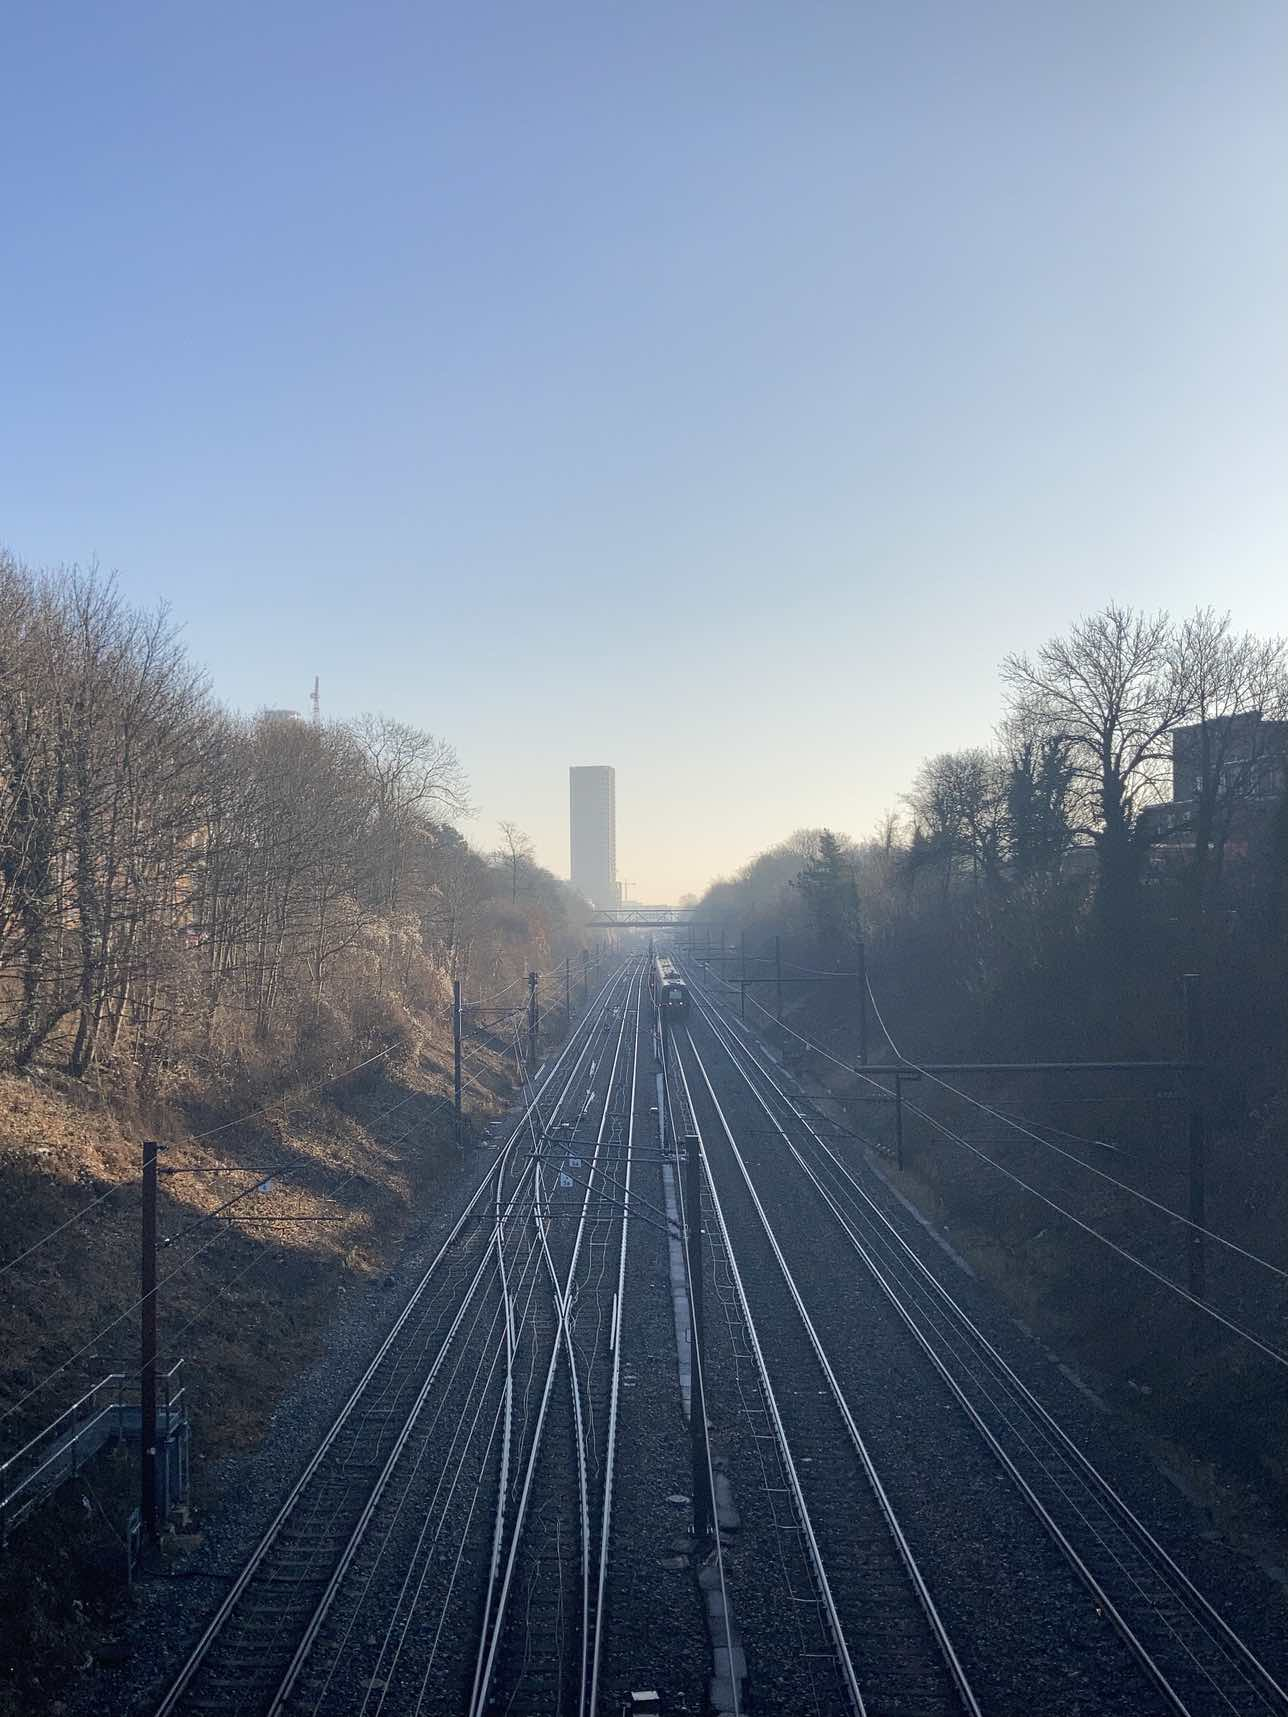 Train tracks, in shadow, from Valby bridge. The Carlsberg tower, slightly shrouded in the haze in the distance. Naked trees against an otherwise clear sky.